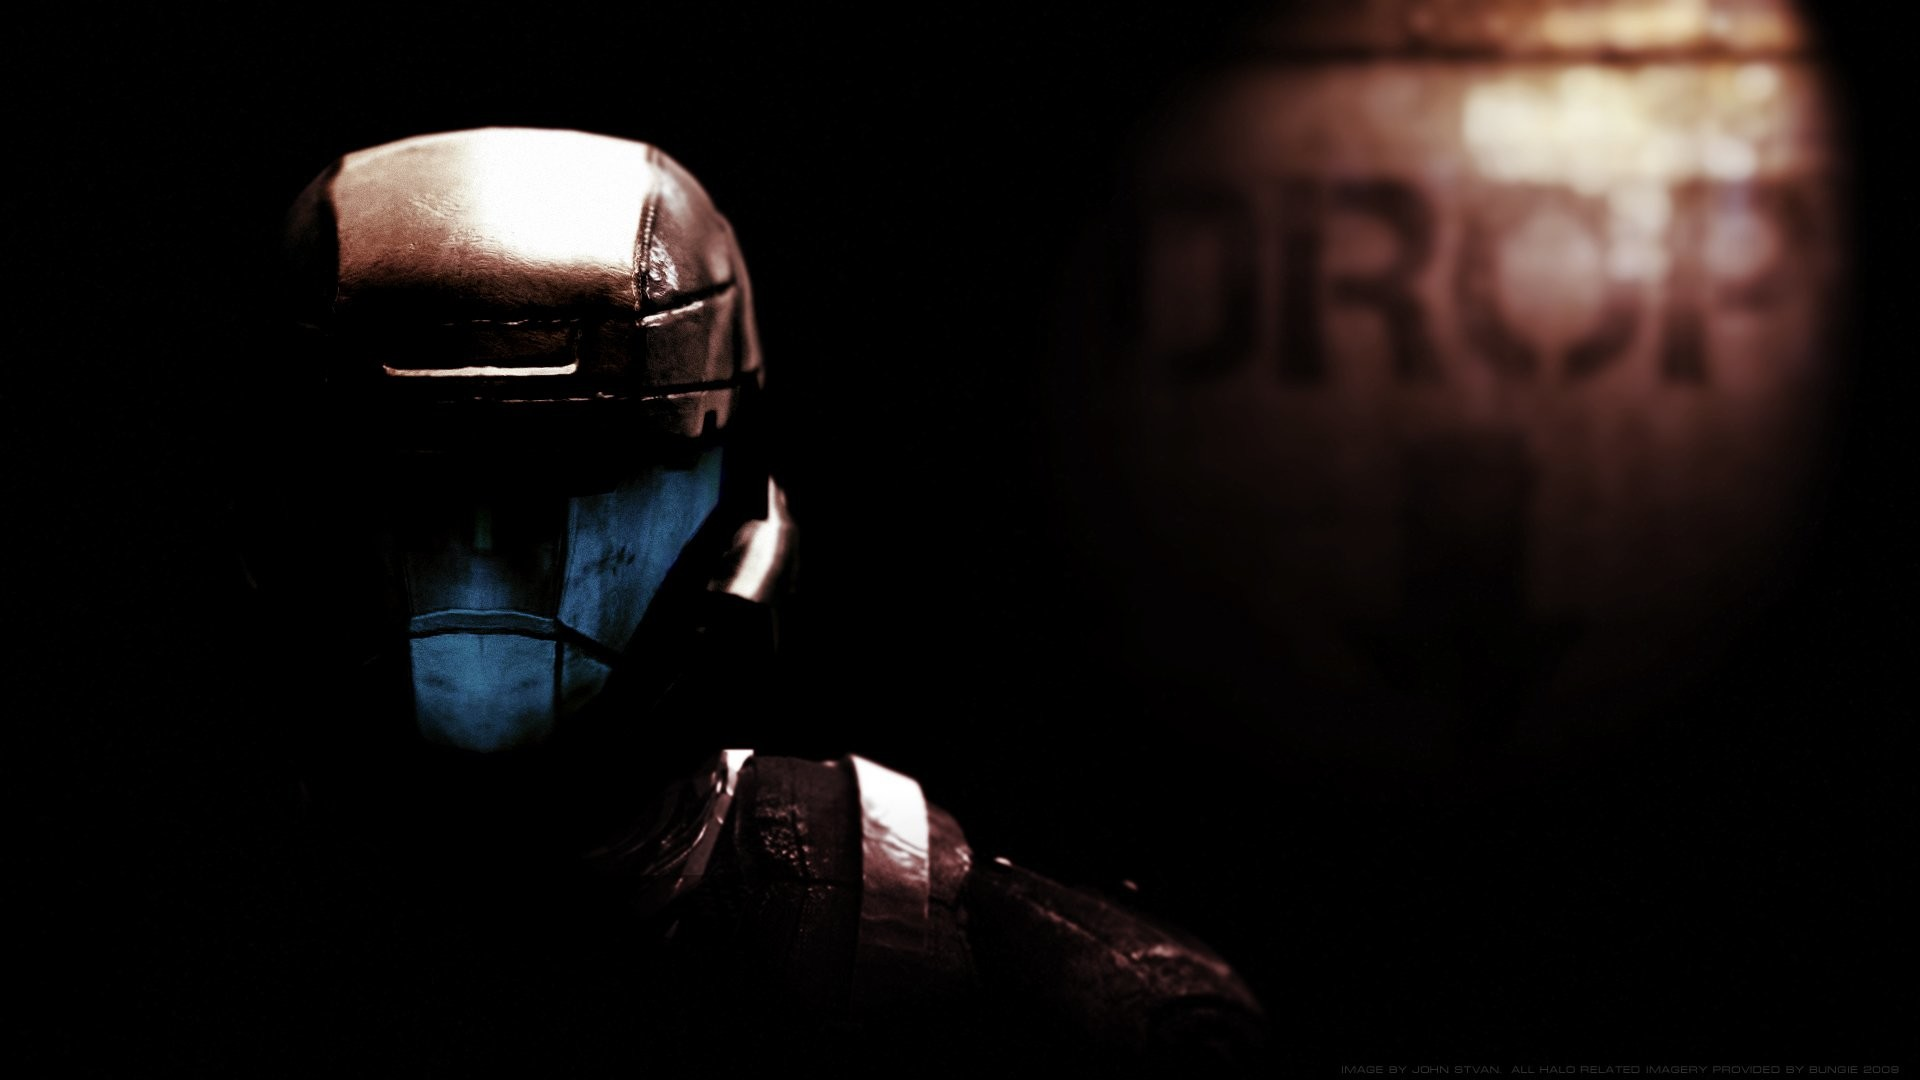 Explore More Wallpapers in the Halo Collection!